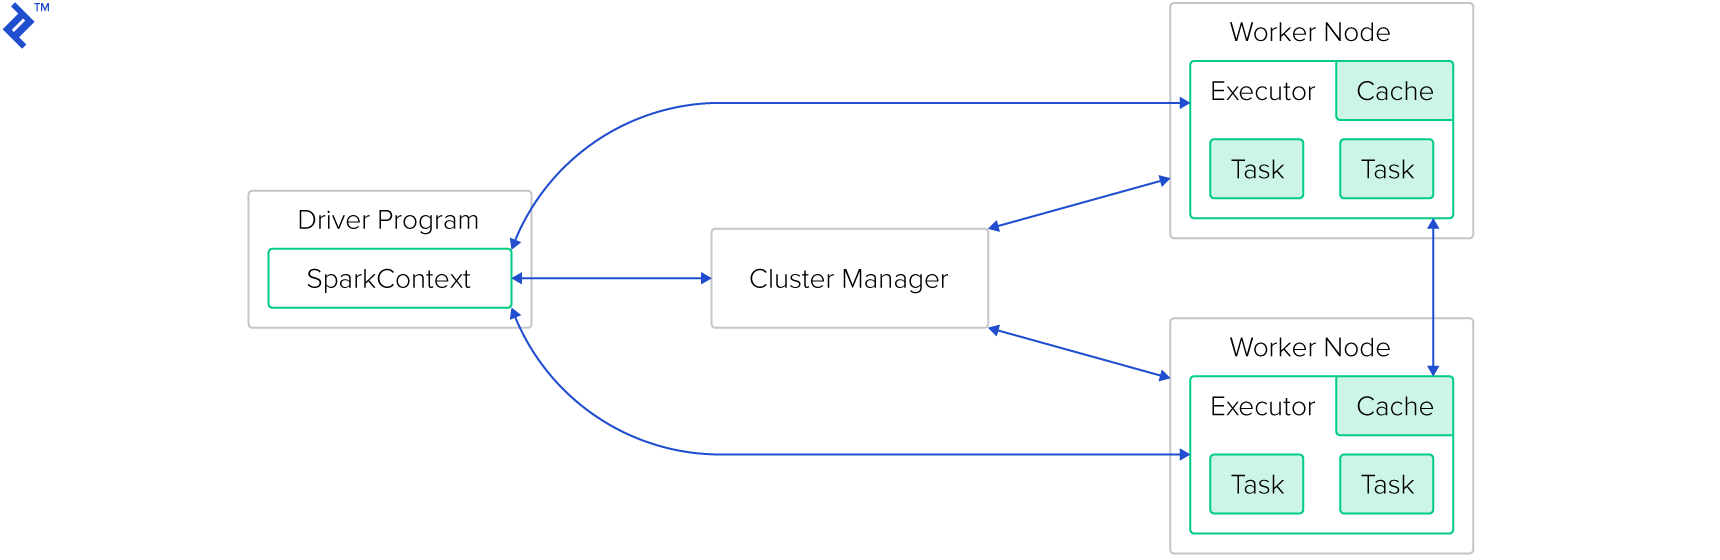 The basic structure of a Spark-cluster: A driver program's SparkContext interfaces with a cluster manager, both of which interface with worker nodes, which have access to each other. Each worker node has an executor with tasks, and a cache.